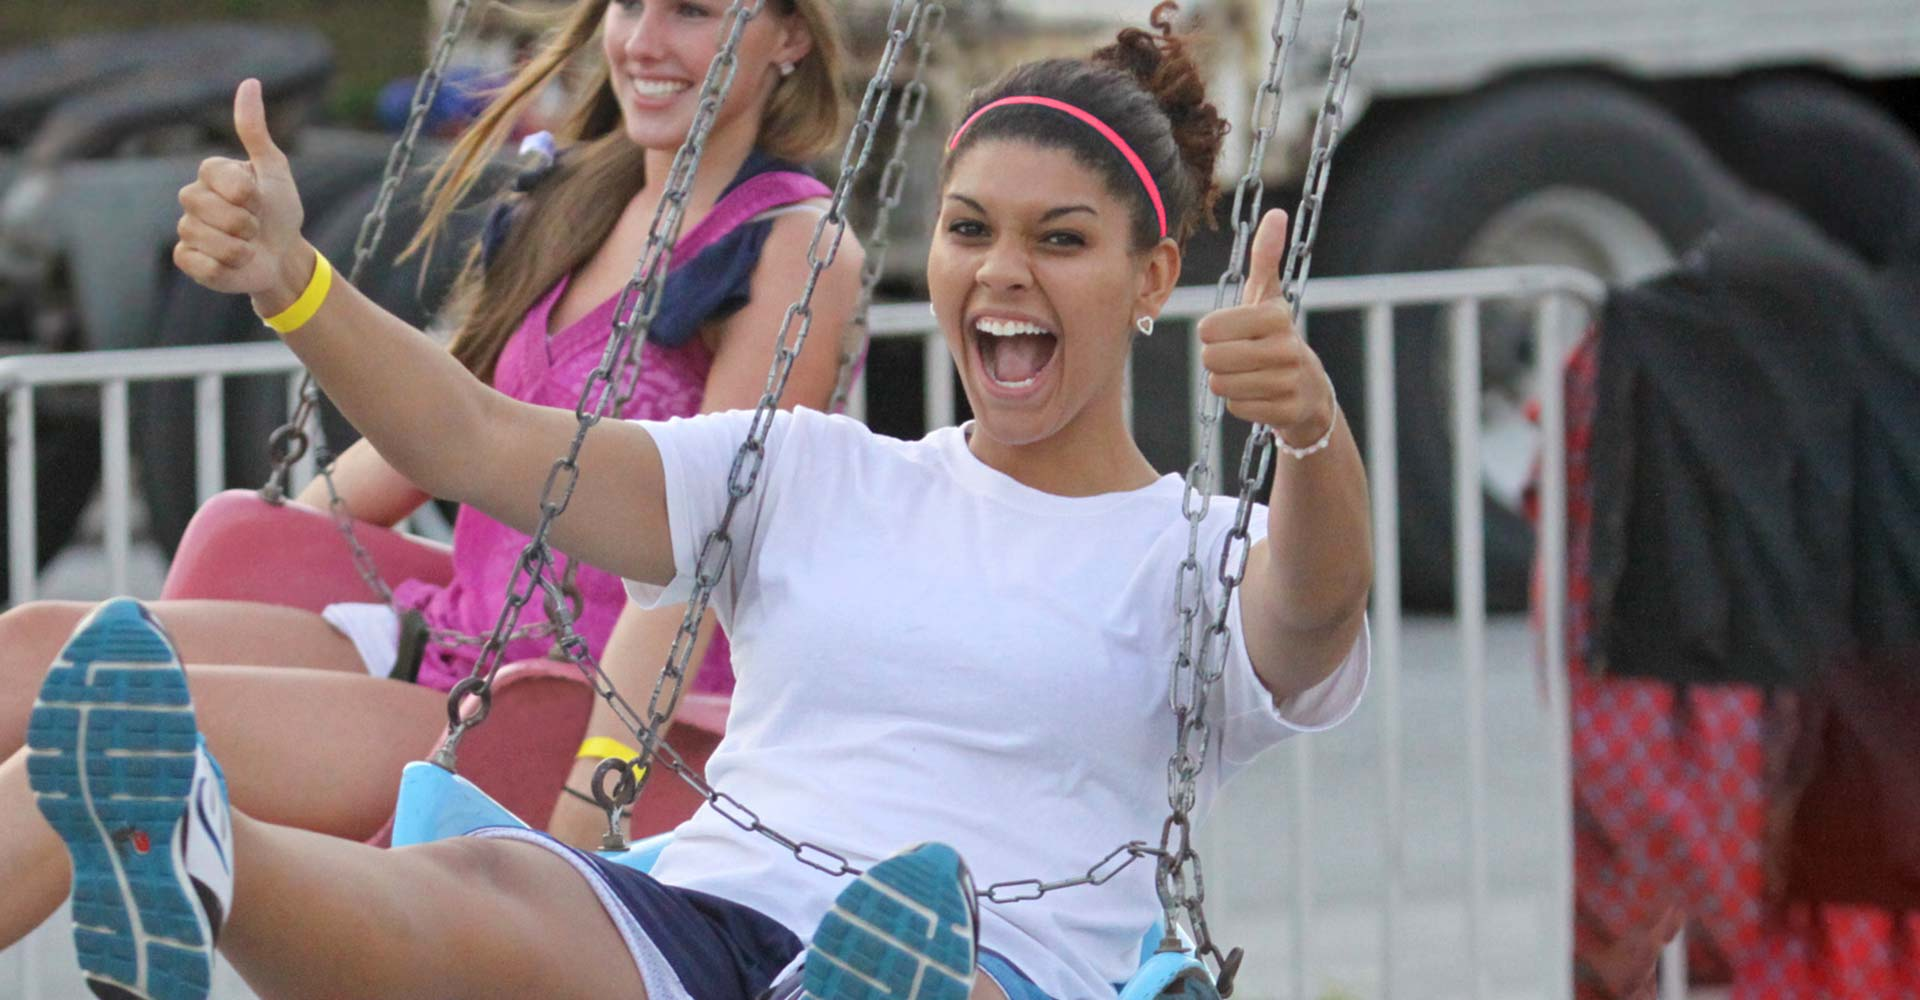 Student enjoying the swing ride at the Fair Well event.